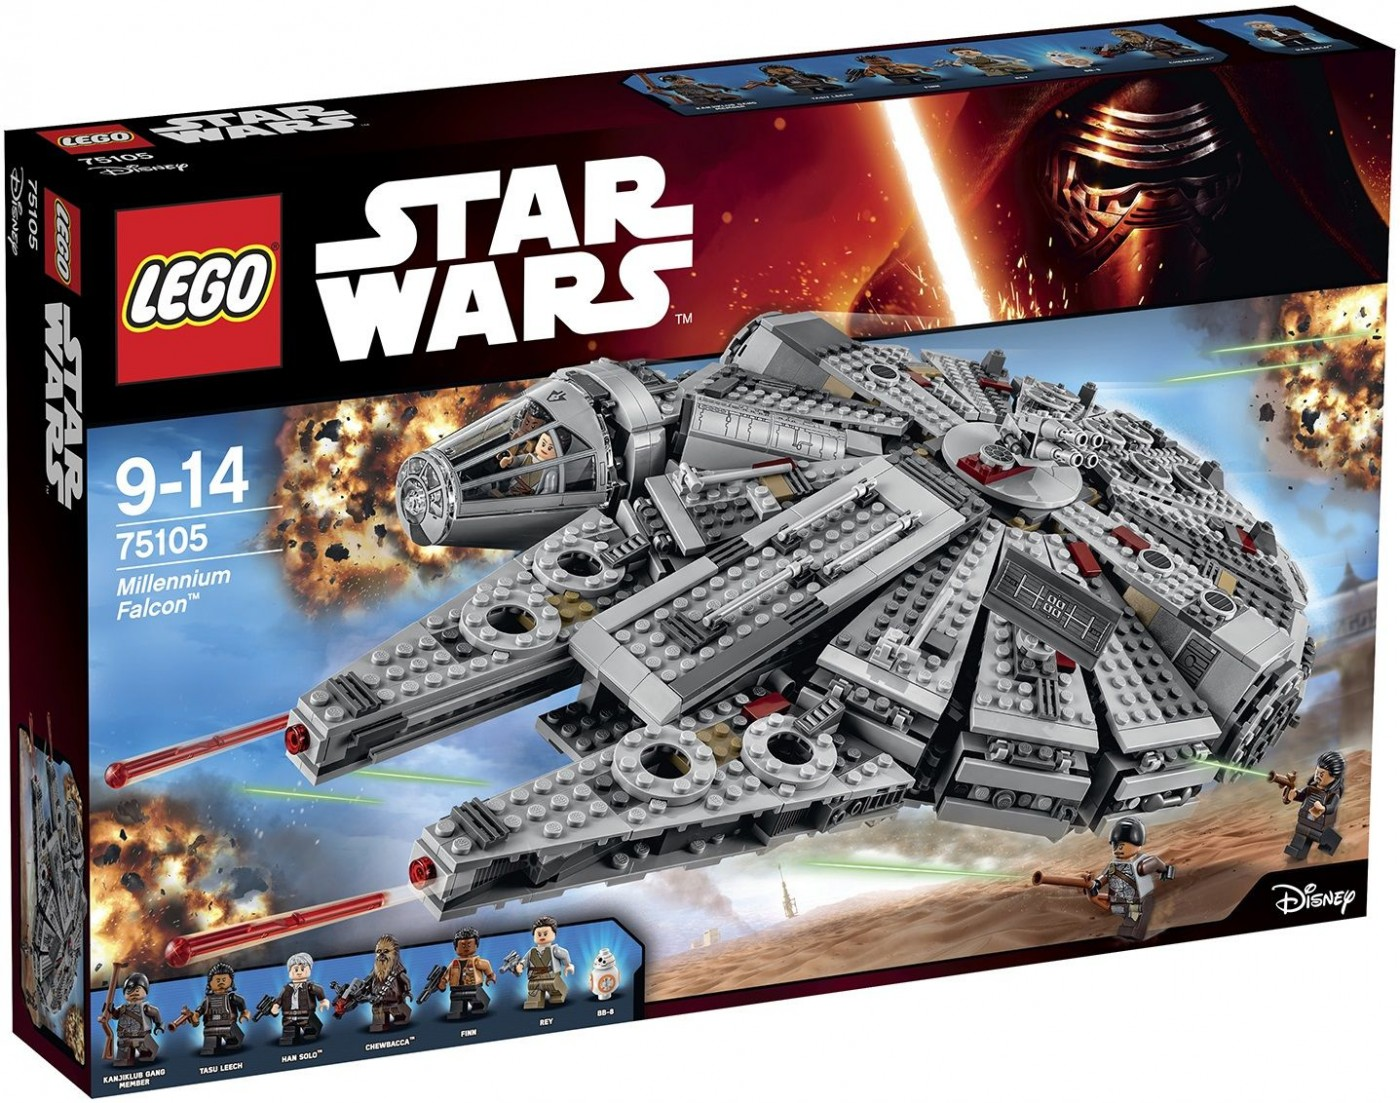 LEGO Star Wars 75105 Millennium Falcon - Click Image to Close